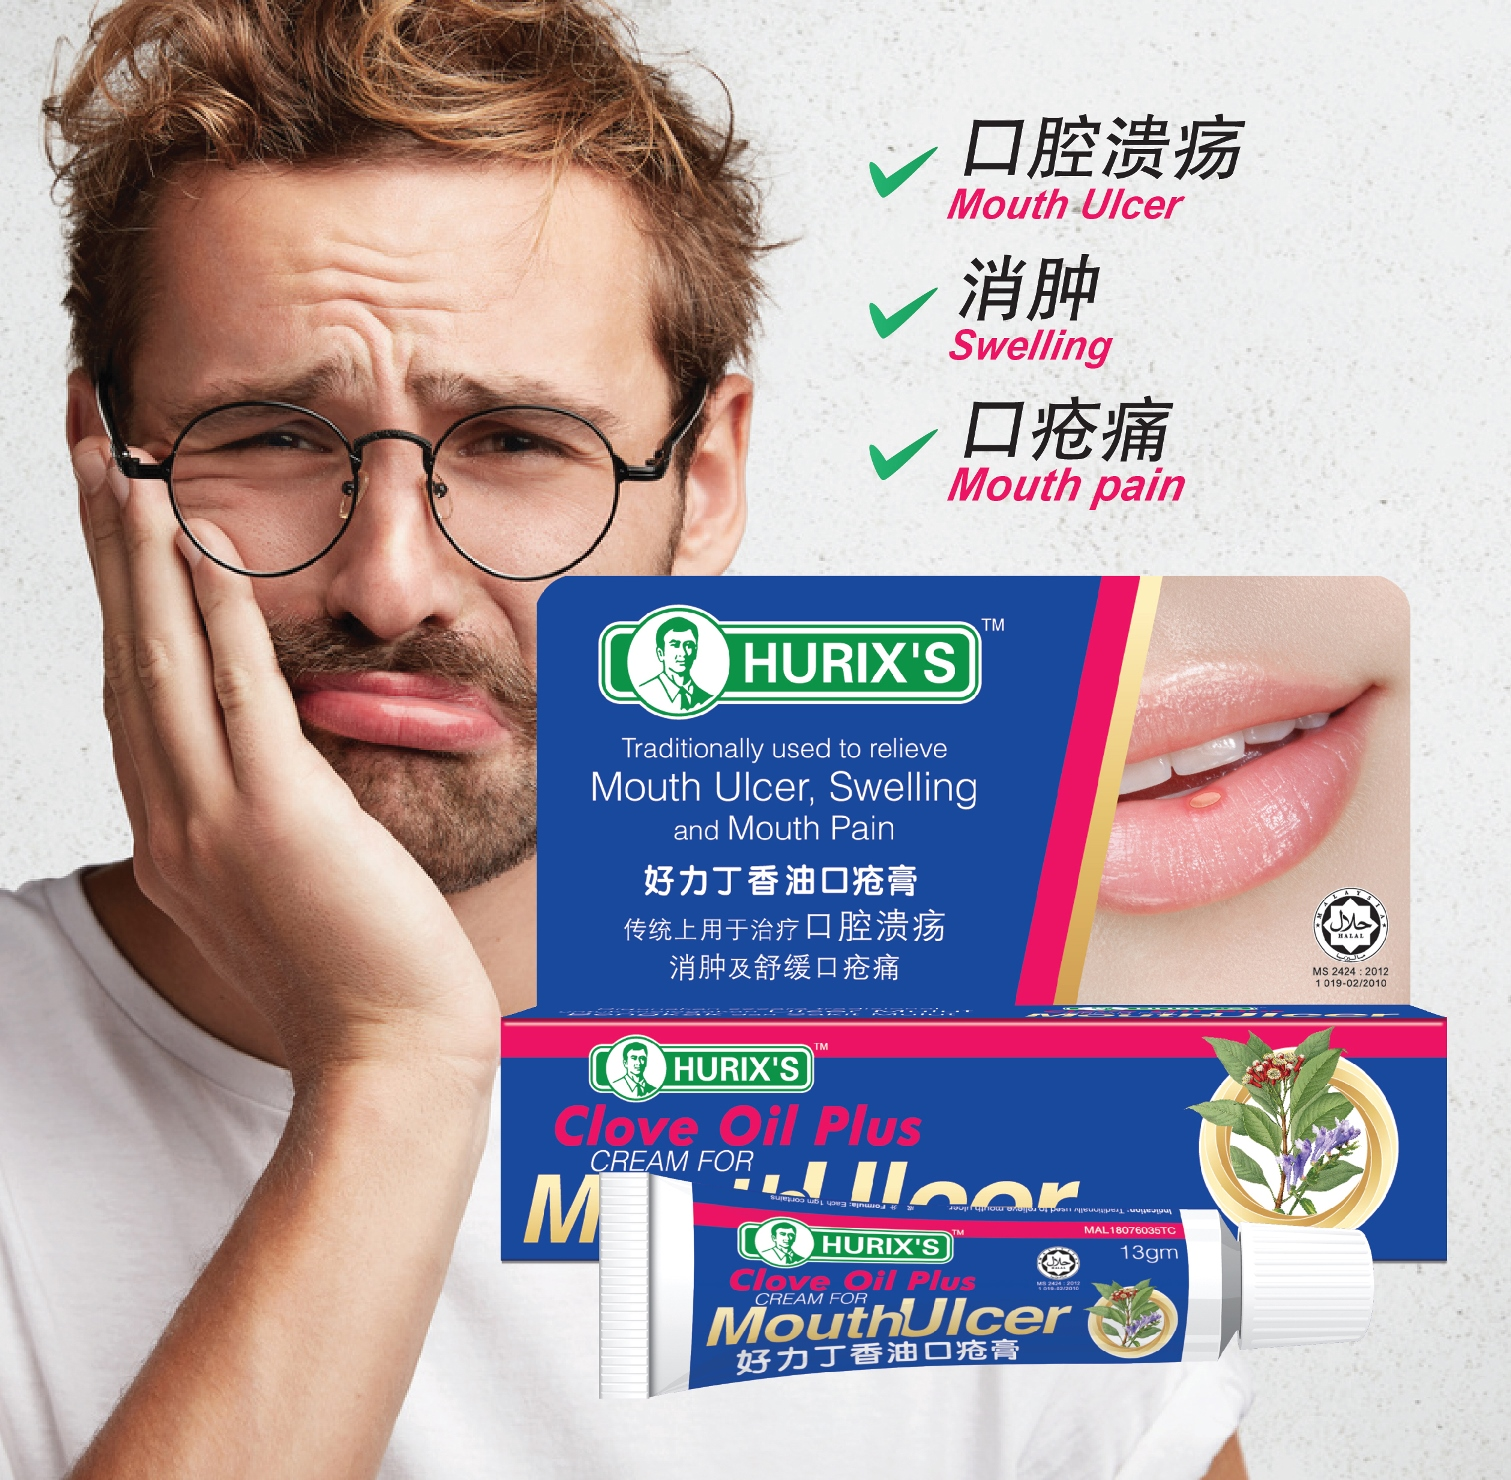 Hurix's Clove Oil Plus Cream for Mouth Ulcer banner